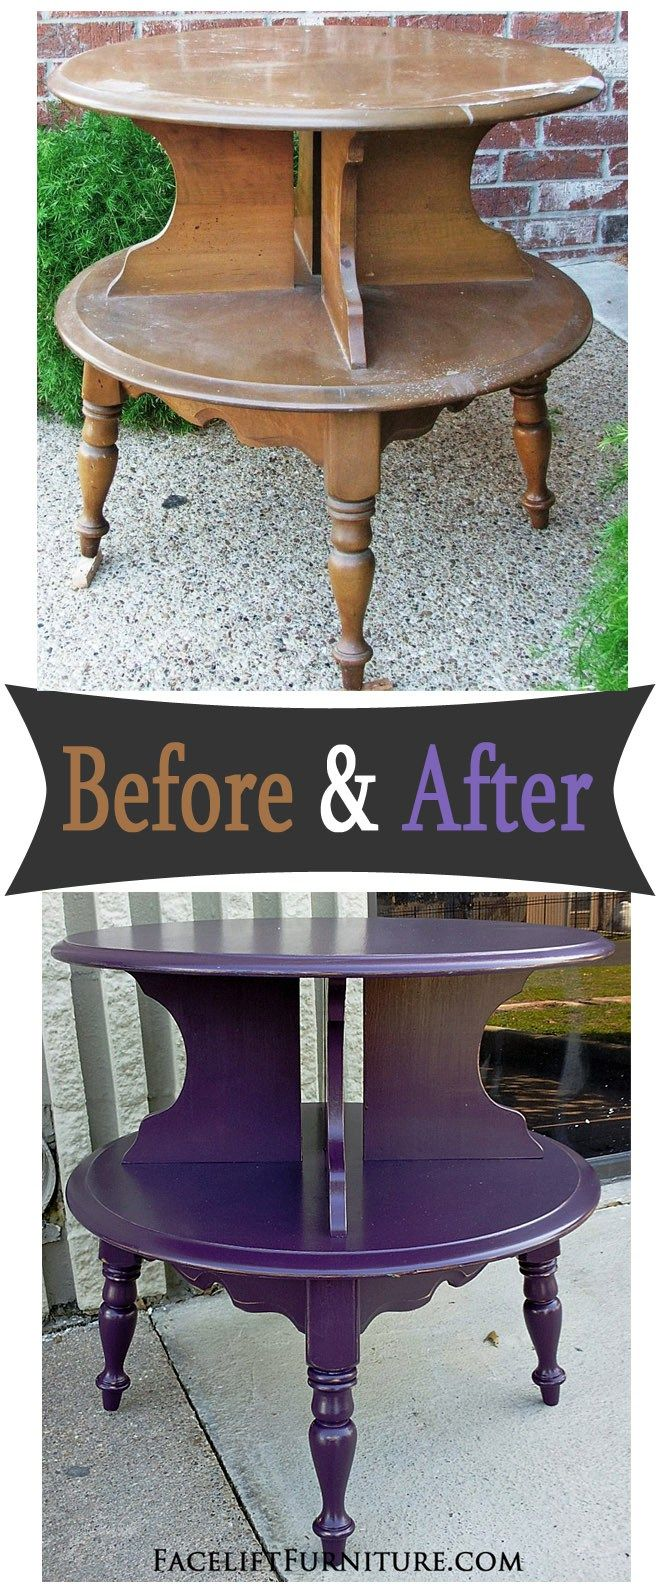 maple end table painted plum before after create rh pinterest com